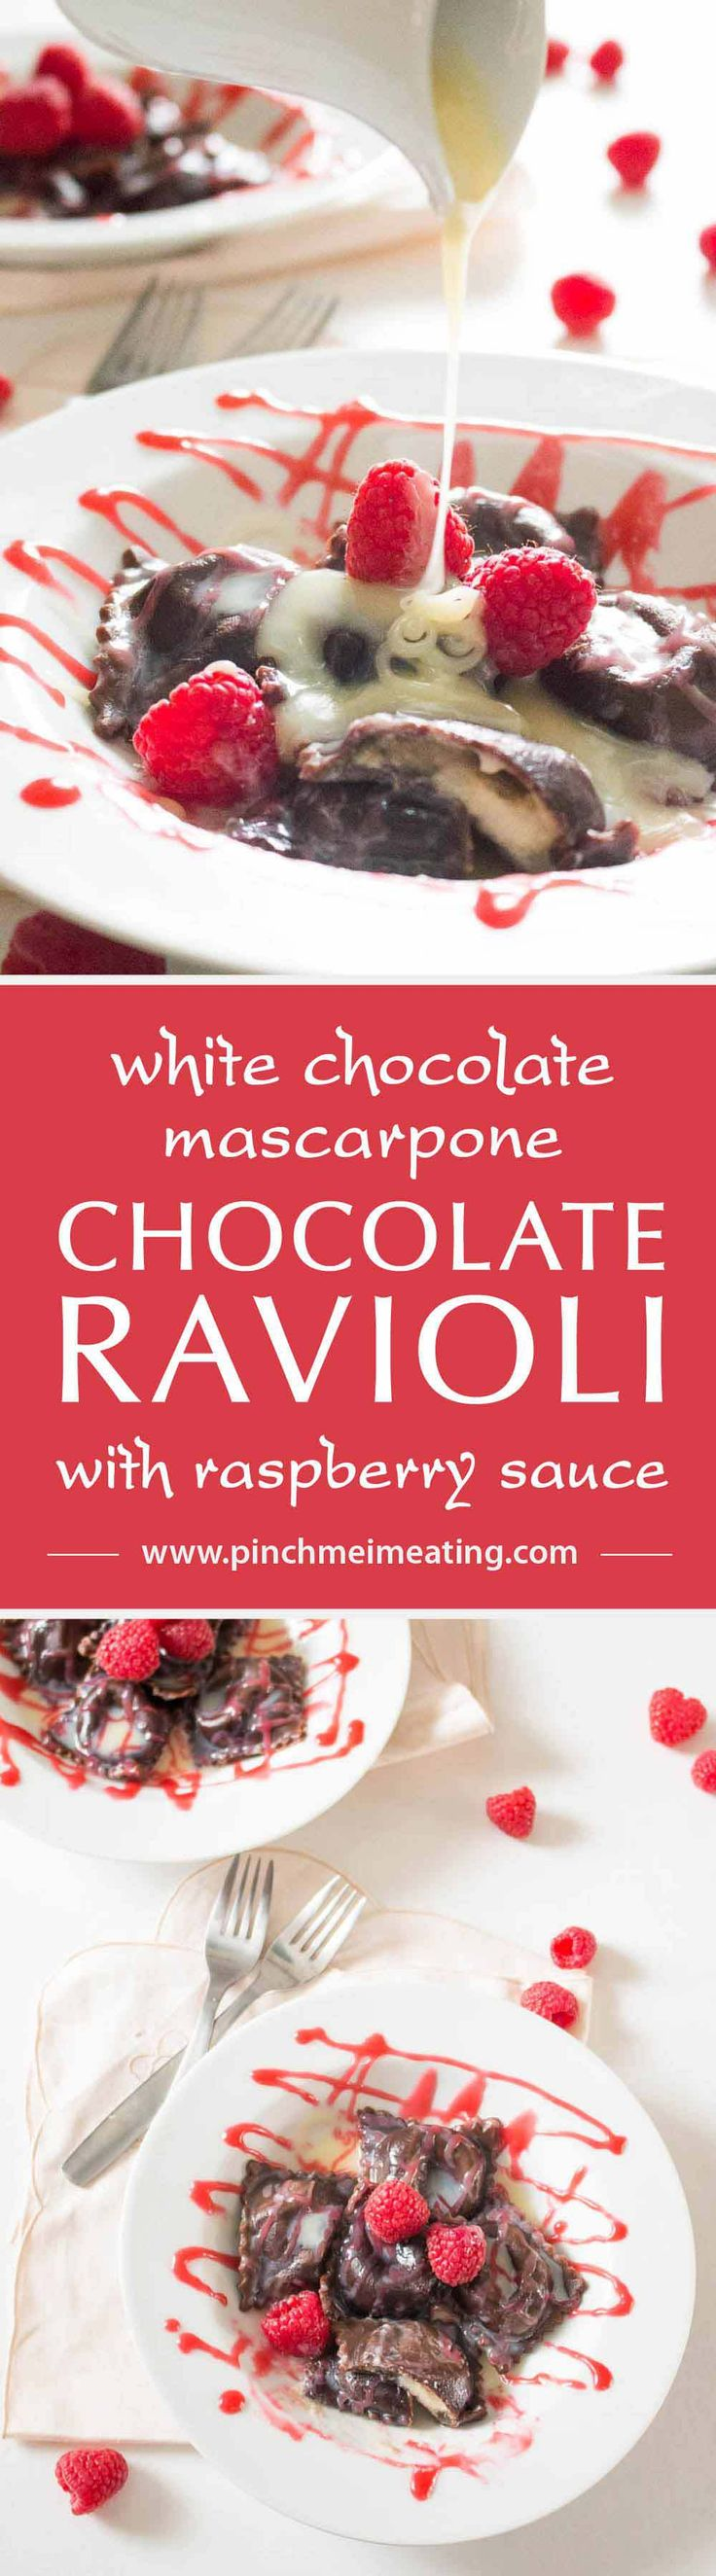 This chocolate ravioli with white chocolate mascarpone filling and raspberry sauce is an elegant, romantic, and unique dessert that is sure to impress! | www.pinchmeimeating.com